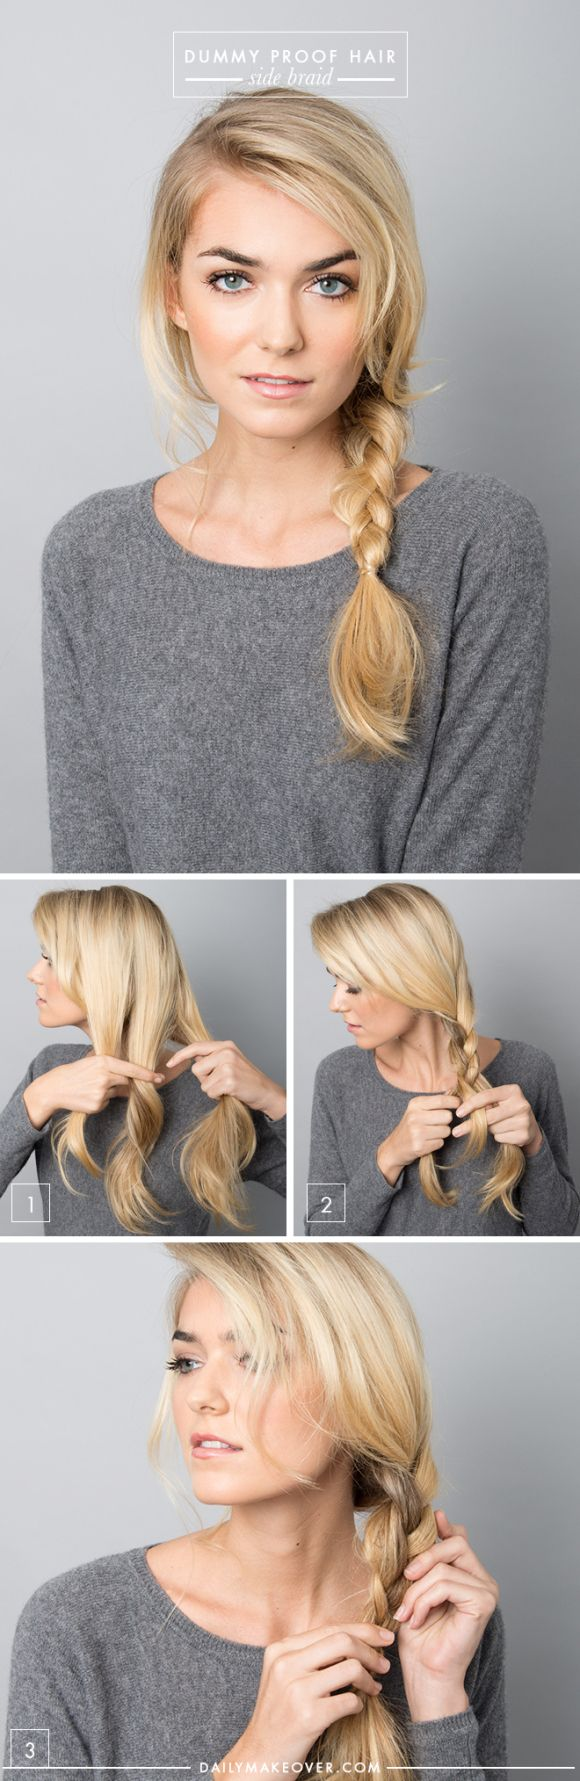 best 25+ casual hairstyles ideas on pinterest | pretty hairstyles